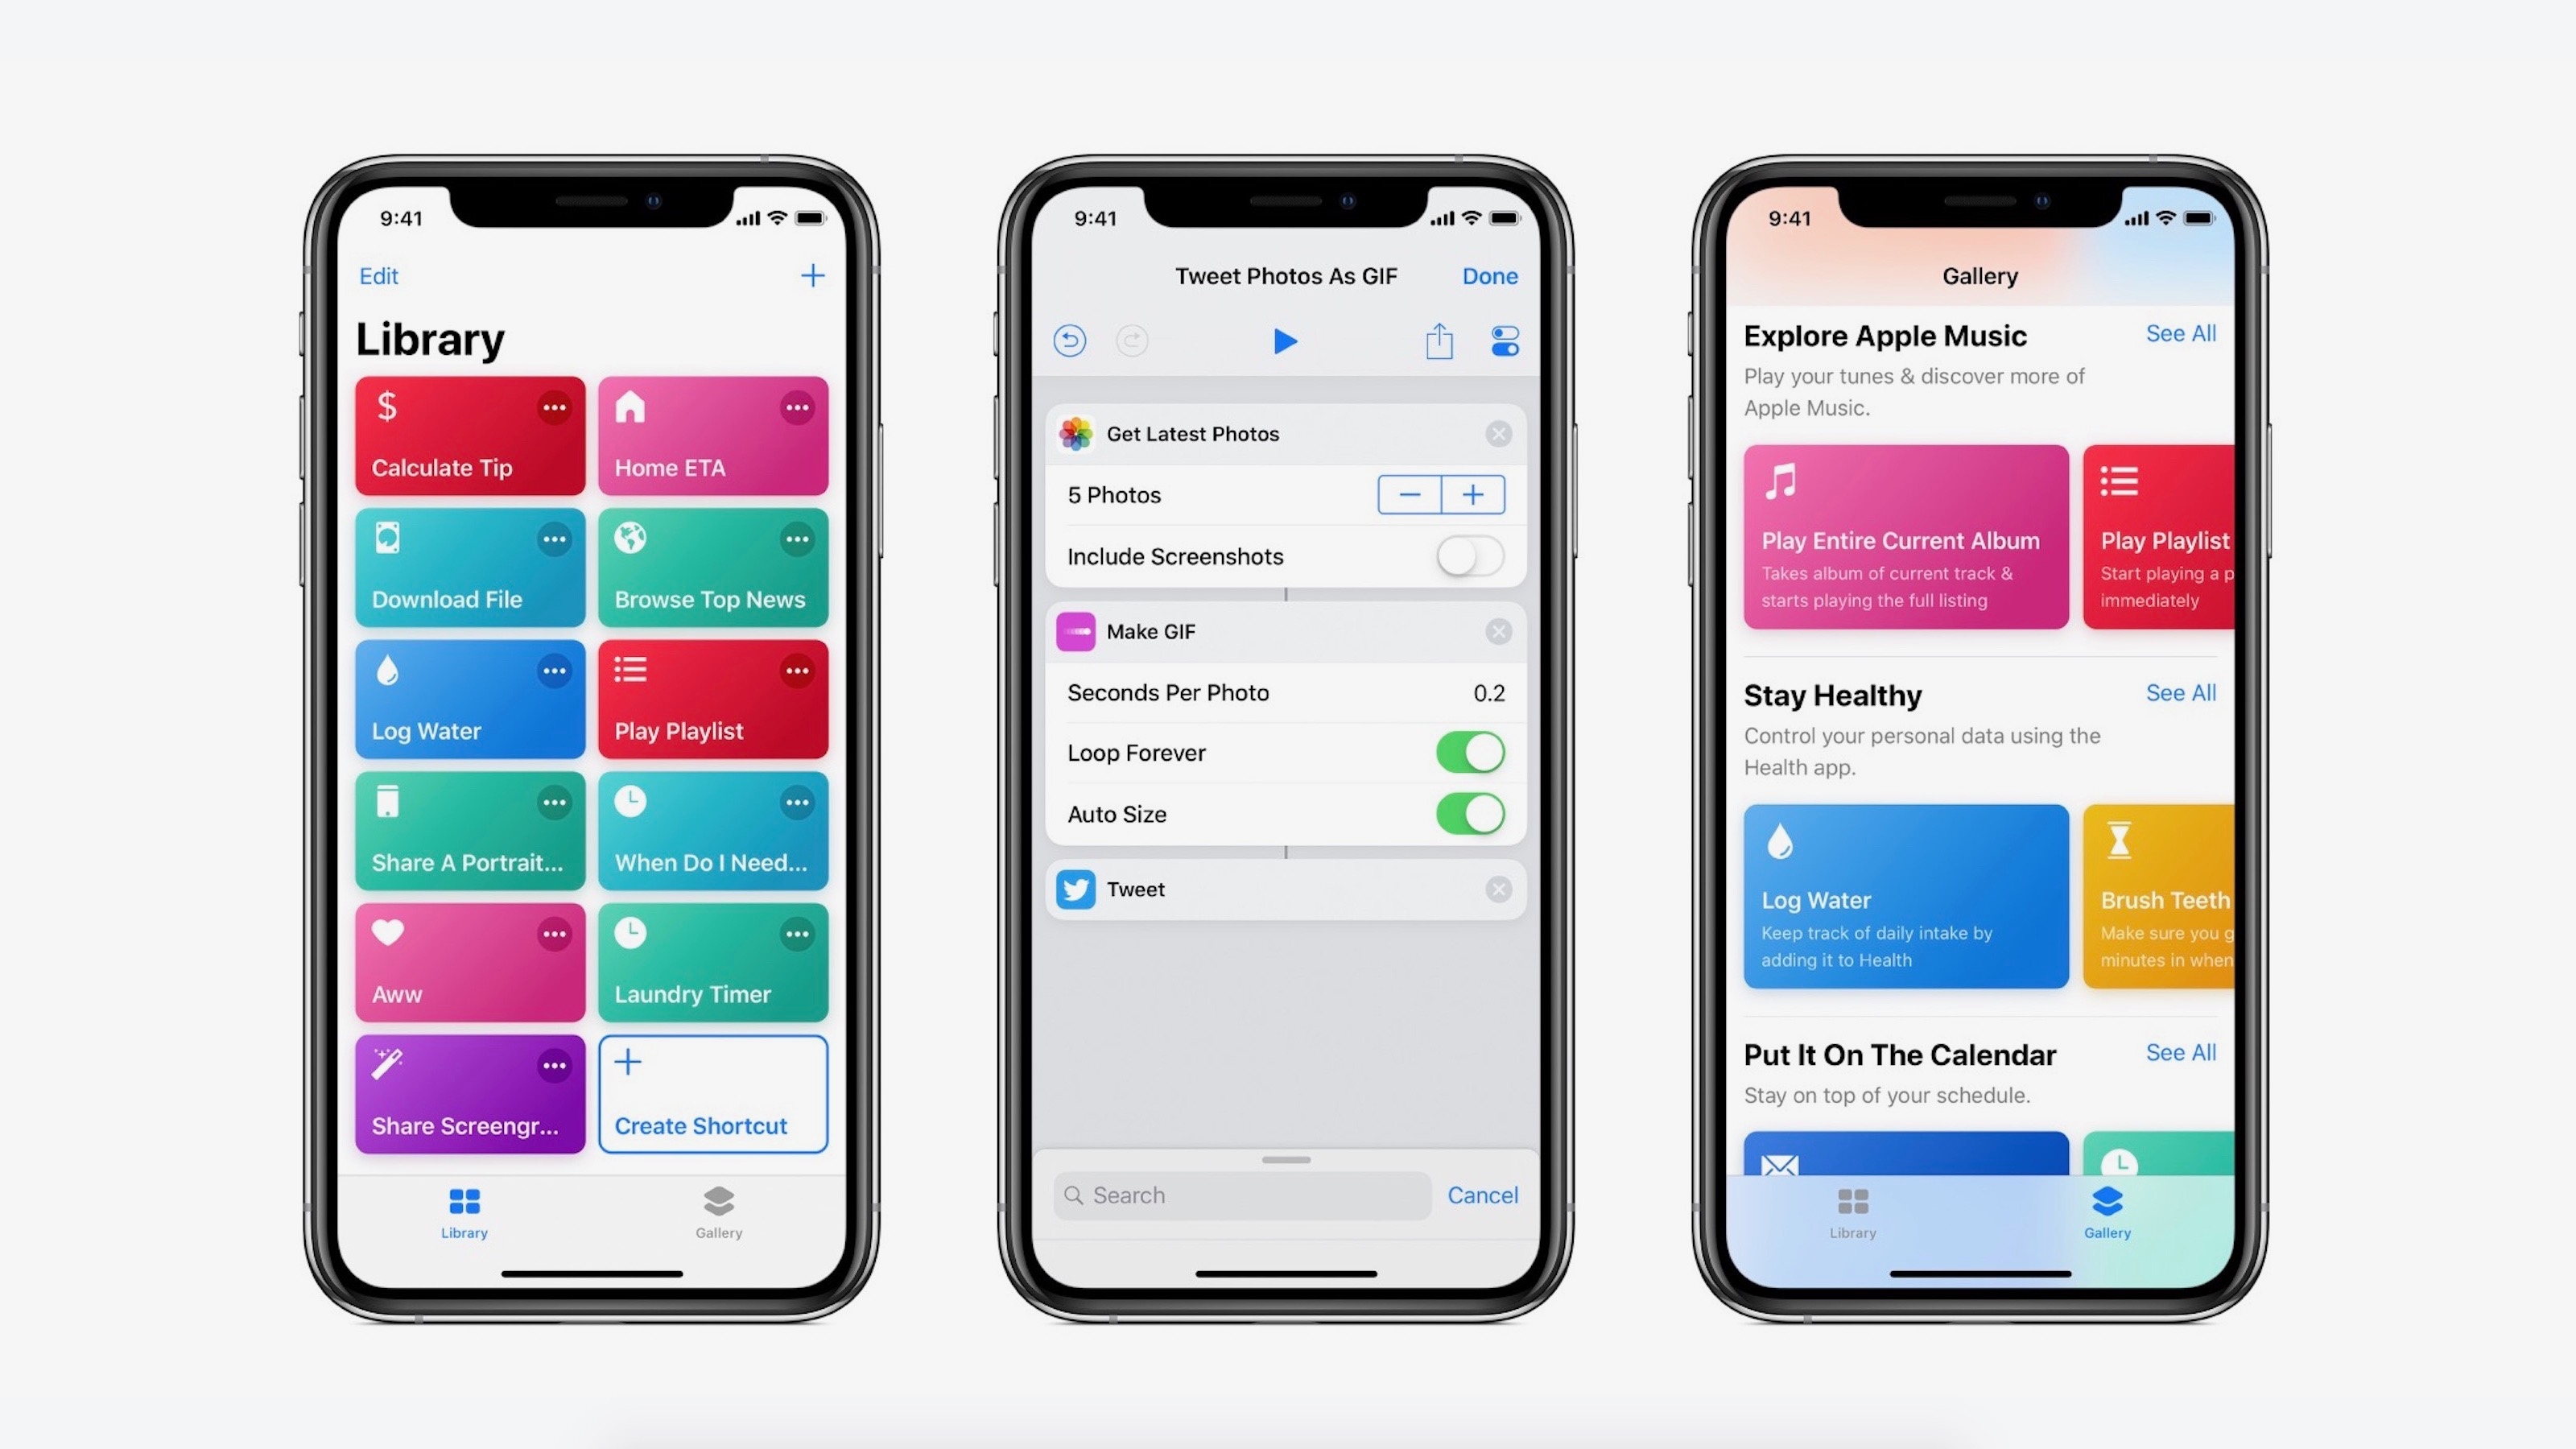 Some iOS users experiencing issues activating Shortcuts, here's an interim fix